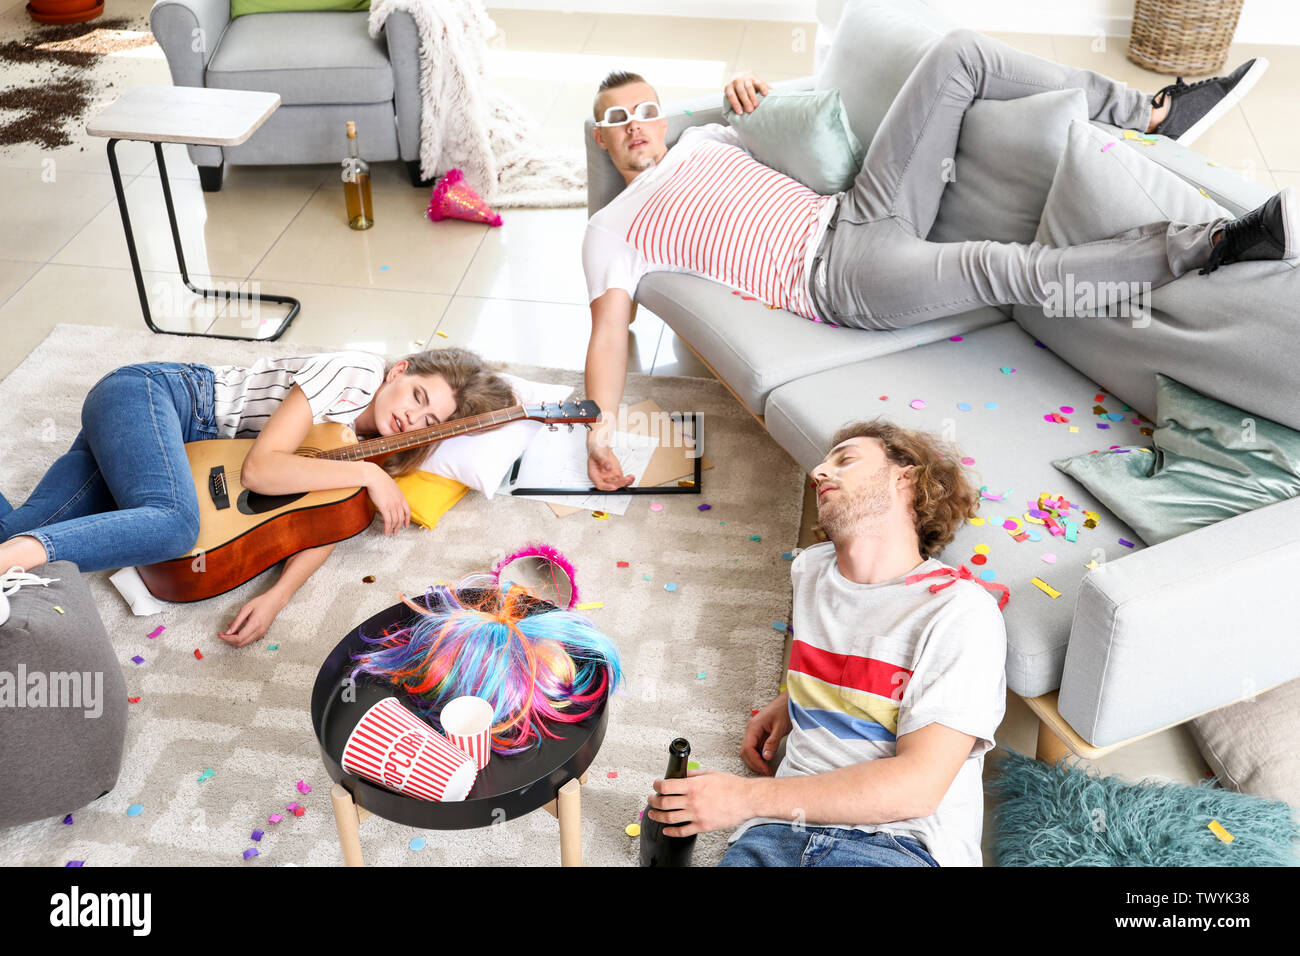 Young people sleeping after party at home - Stock Image